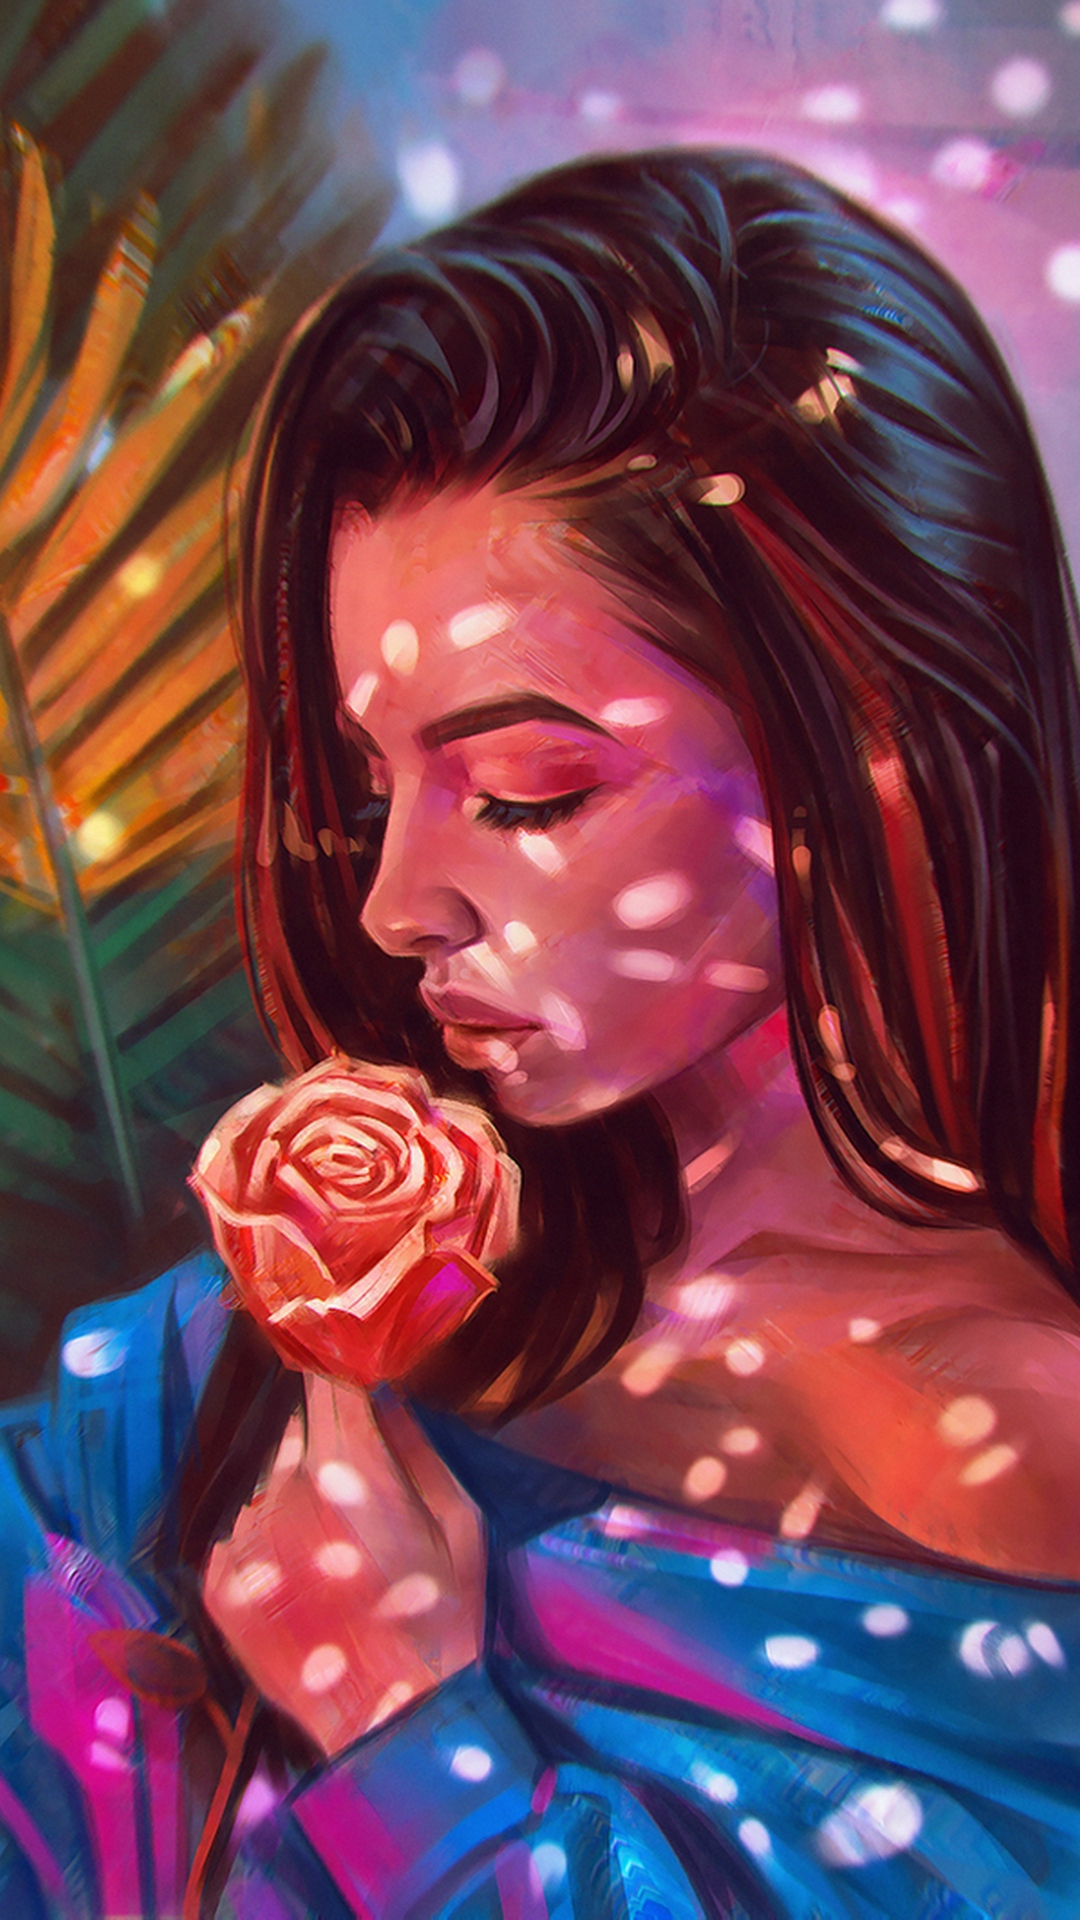 girl holding rose drawing wallpaper